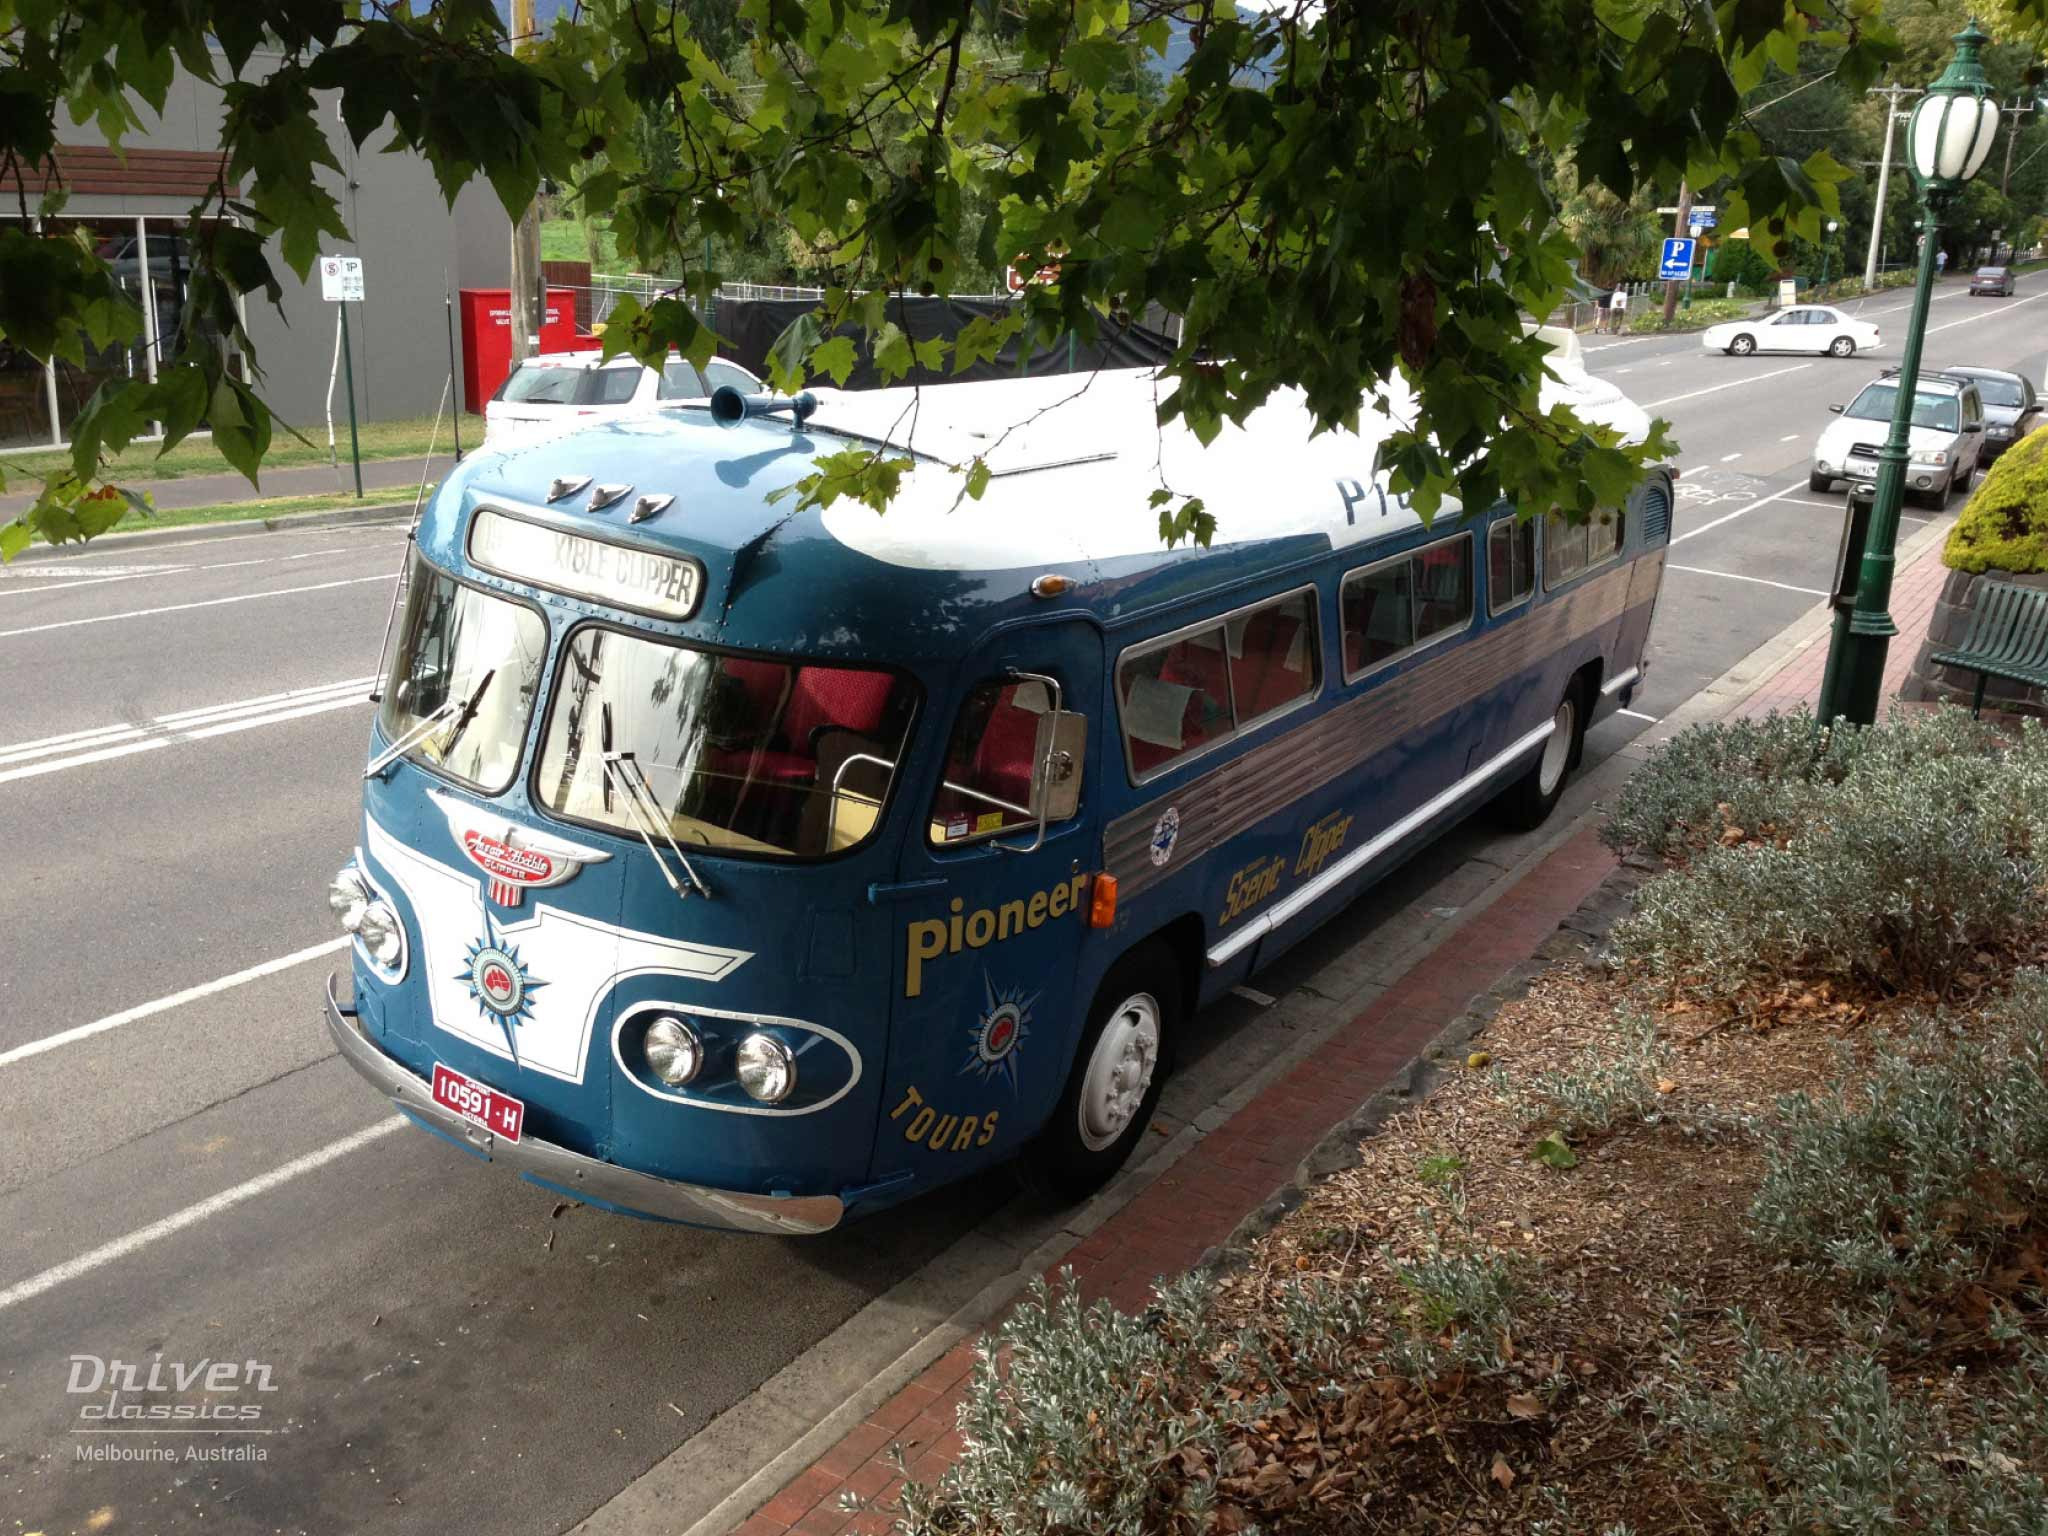 1954 Flxible Clipper bus